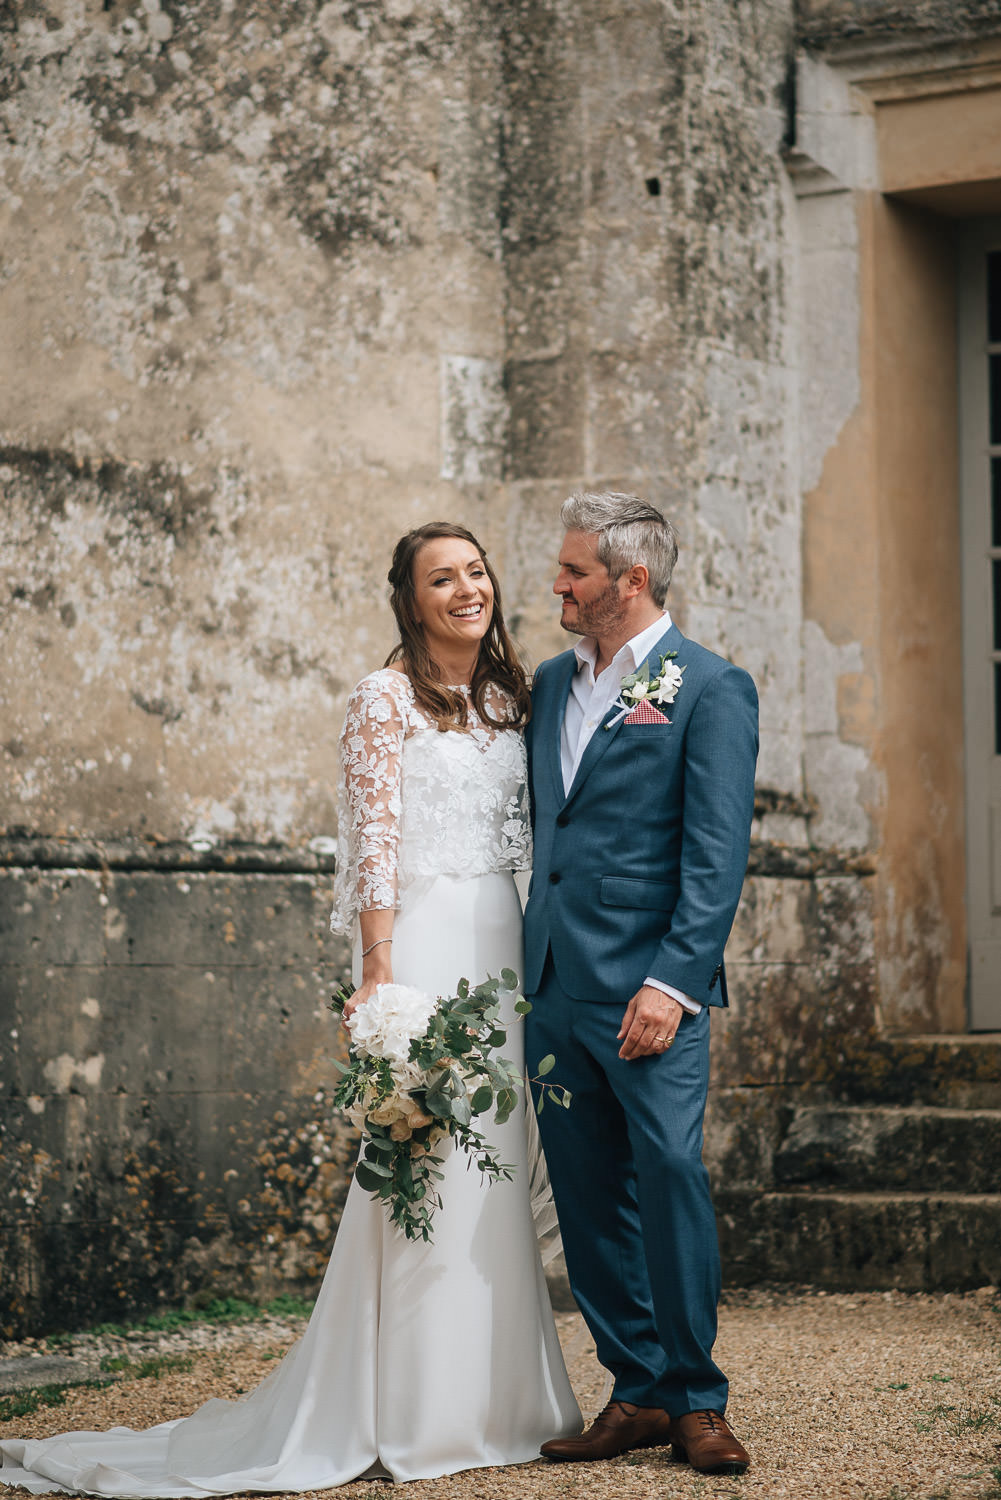 Couples portraits in chateau de la bourlie wedding by destination wedding photographer the shannons photography